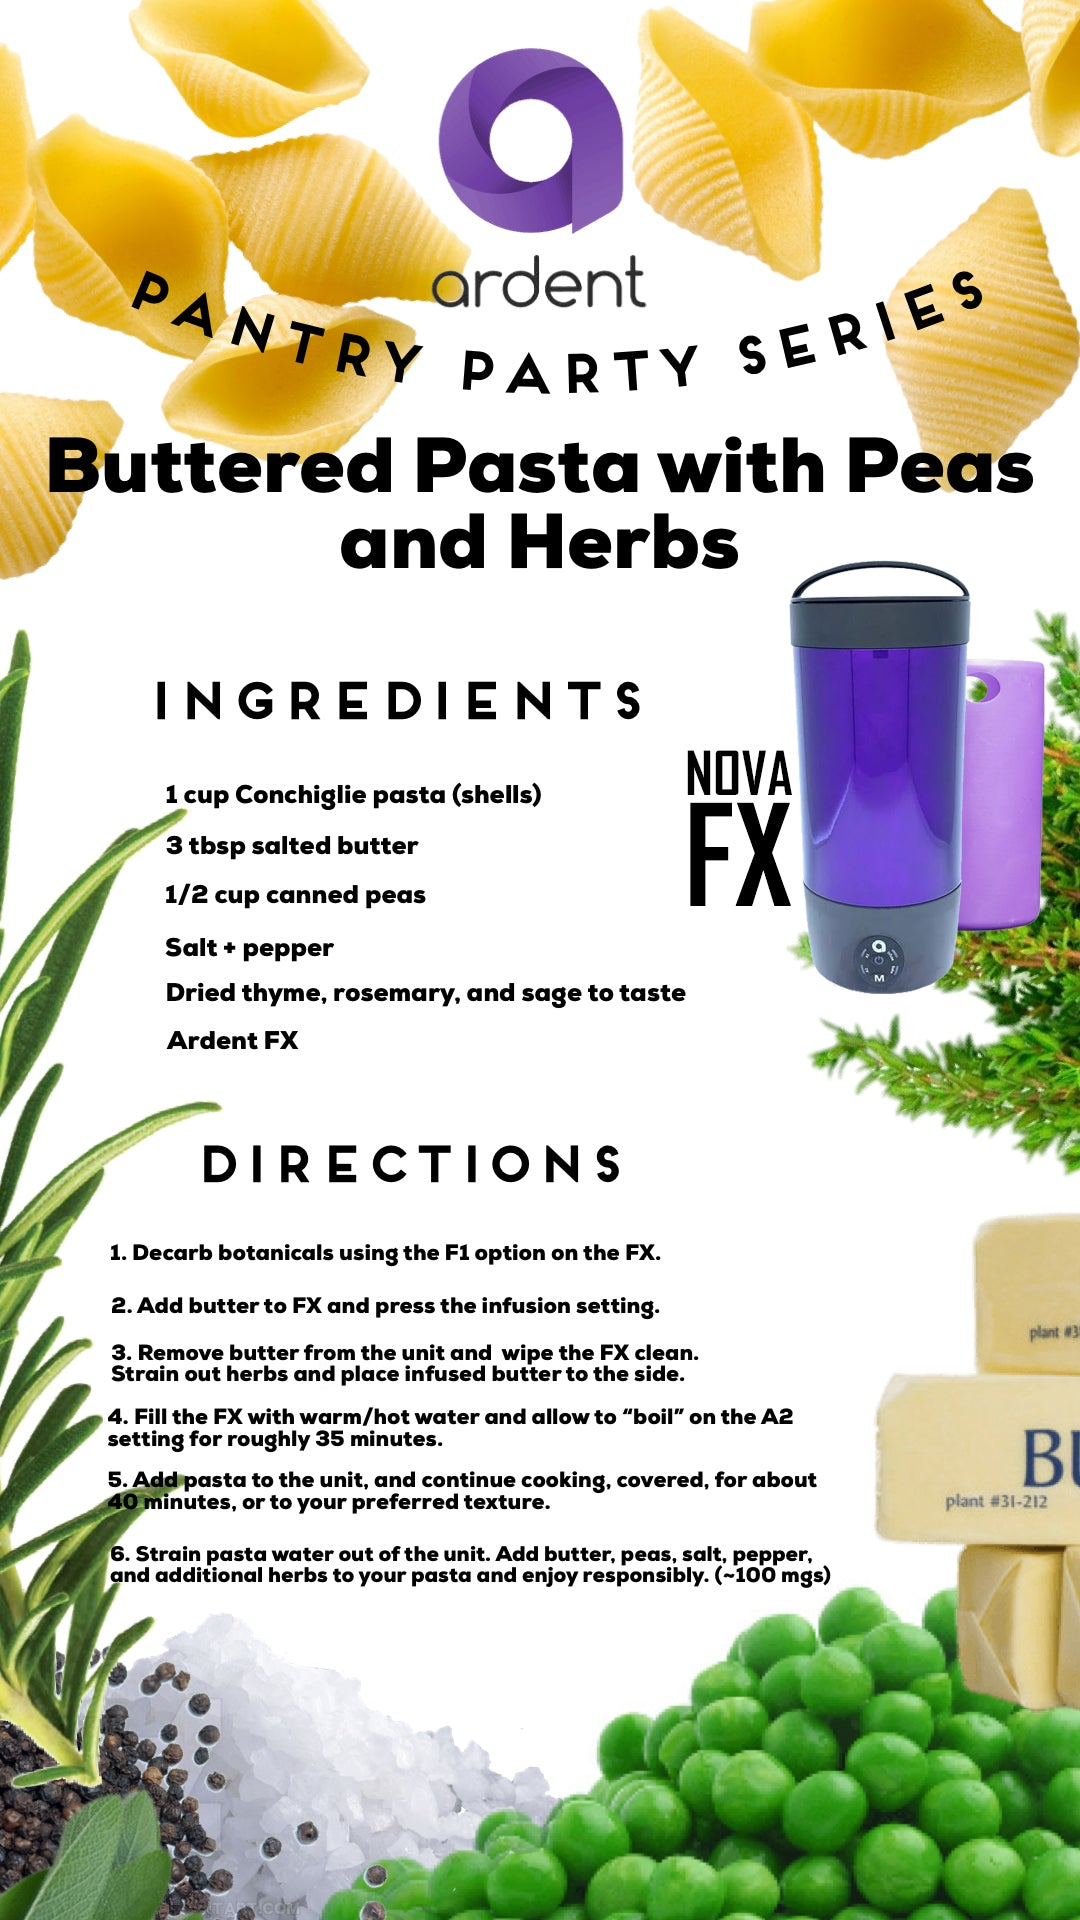 Ardent Nova FX Recipe - Buttered Pasta with Peas & Herbs NZ